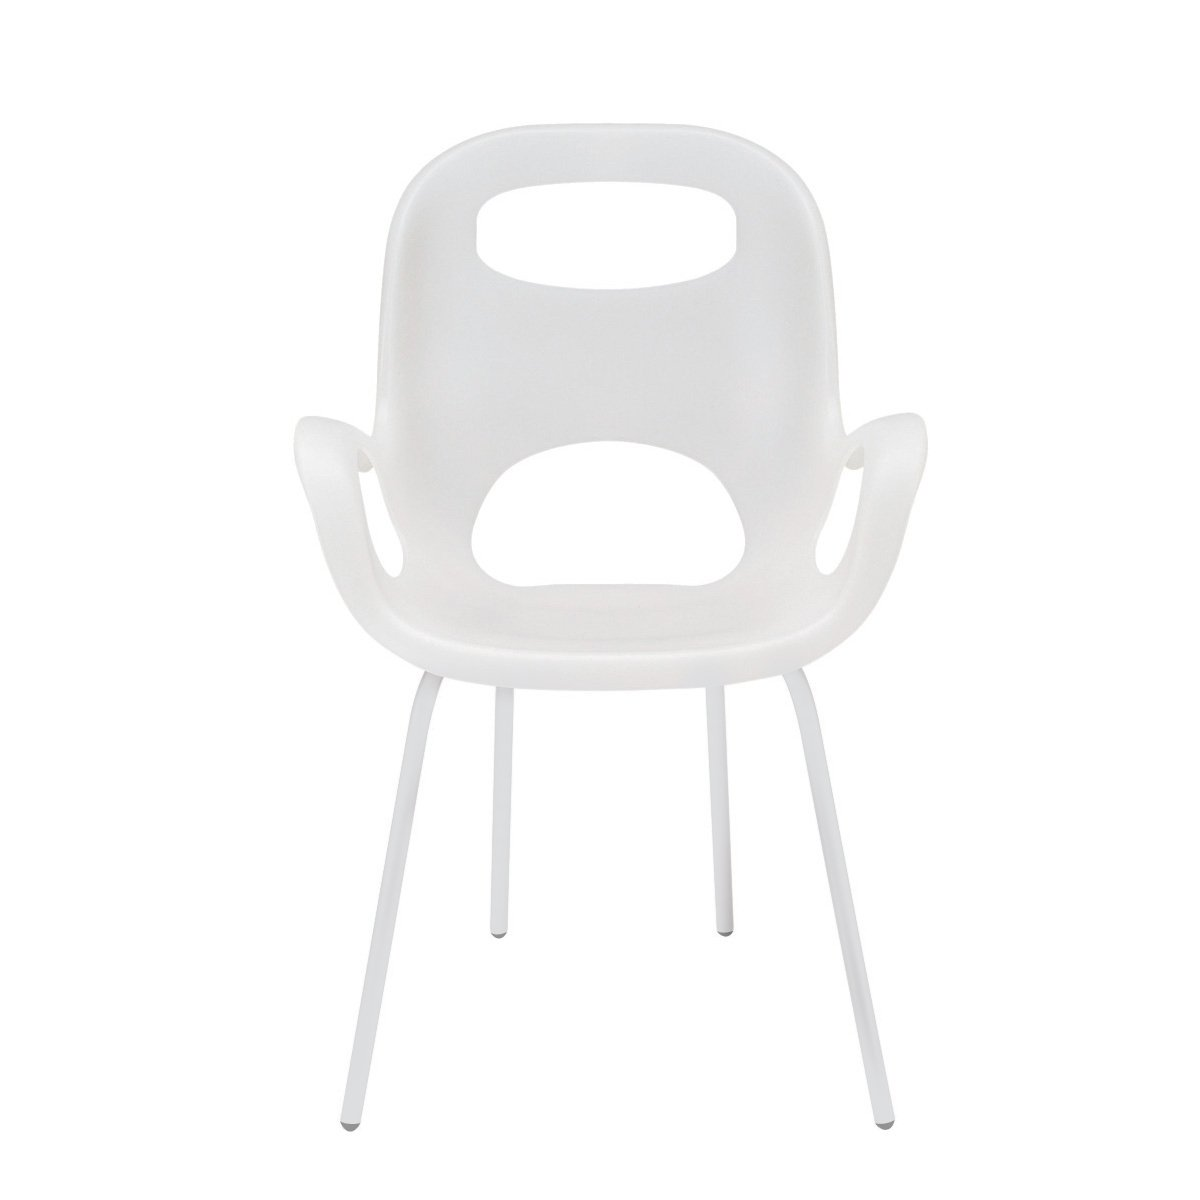 Umbra Oh Chair, Comfortable Seating Indoors and Outdoors, Weather-Resistant, White